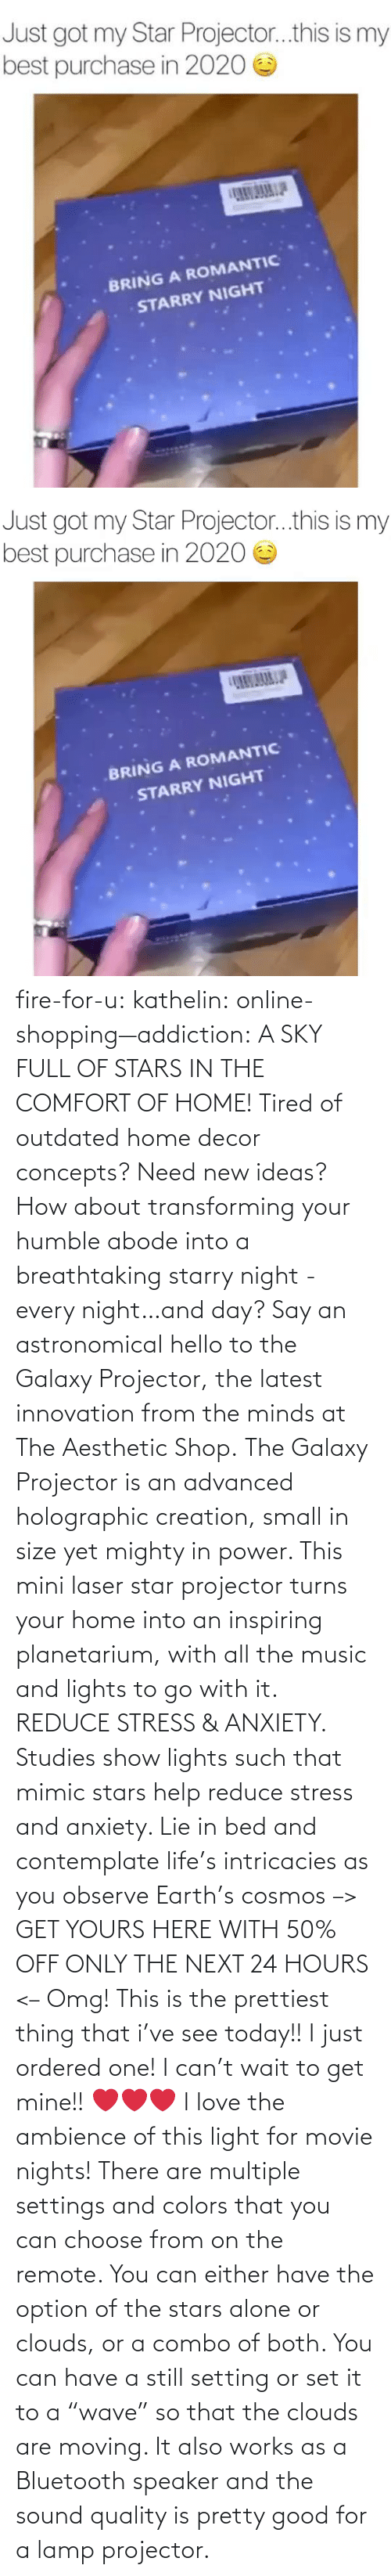 "Fire: fire-for-u:  kathelin: online-shopping—addiction:  A SKY FULL OF STARS IN THE COMFORT OF HOME! Tired of outdated home decor concepts? Need new ideas? How about transforming your humble abode into a breathtaking starry night - every night…and day? Say an astronomical hello to the Galaxy Projector, the latest innovation from the minds at The Aesthetic Shop. The Galaxy Projector is an advanced holographic creation, small in size yet mighty in power. This mini laser star projector turns your home into an inspiring planetarium, with all the music and lights to go with it. REDUCE STRESS & ANXIETY. Studies show lights such that mimic stars help reduce stress and anxiety. Lie in bed and contemplate life's intricacies as you observe Earth's cosmos  –> GET YOURS HERE WITH 50% OFF ONLY THE NEXT 24 HOURS <–   Omg! This is the prettiest thing that i've see today!! I just ordered one! I can't wait to get mine!! ❤️️❤️️❤️️  I love the ambience of this light for movie nights! There are multiple settings and colors that you can choose from on the remote. You can either have the option of the stars alone or clouds, or a combo of both. You can have a still setting or set it to a ""wave"" so that the clouds are moving. It also works as a Bluetooth speaker and the sound quality is pretty good for a lamp projector."